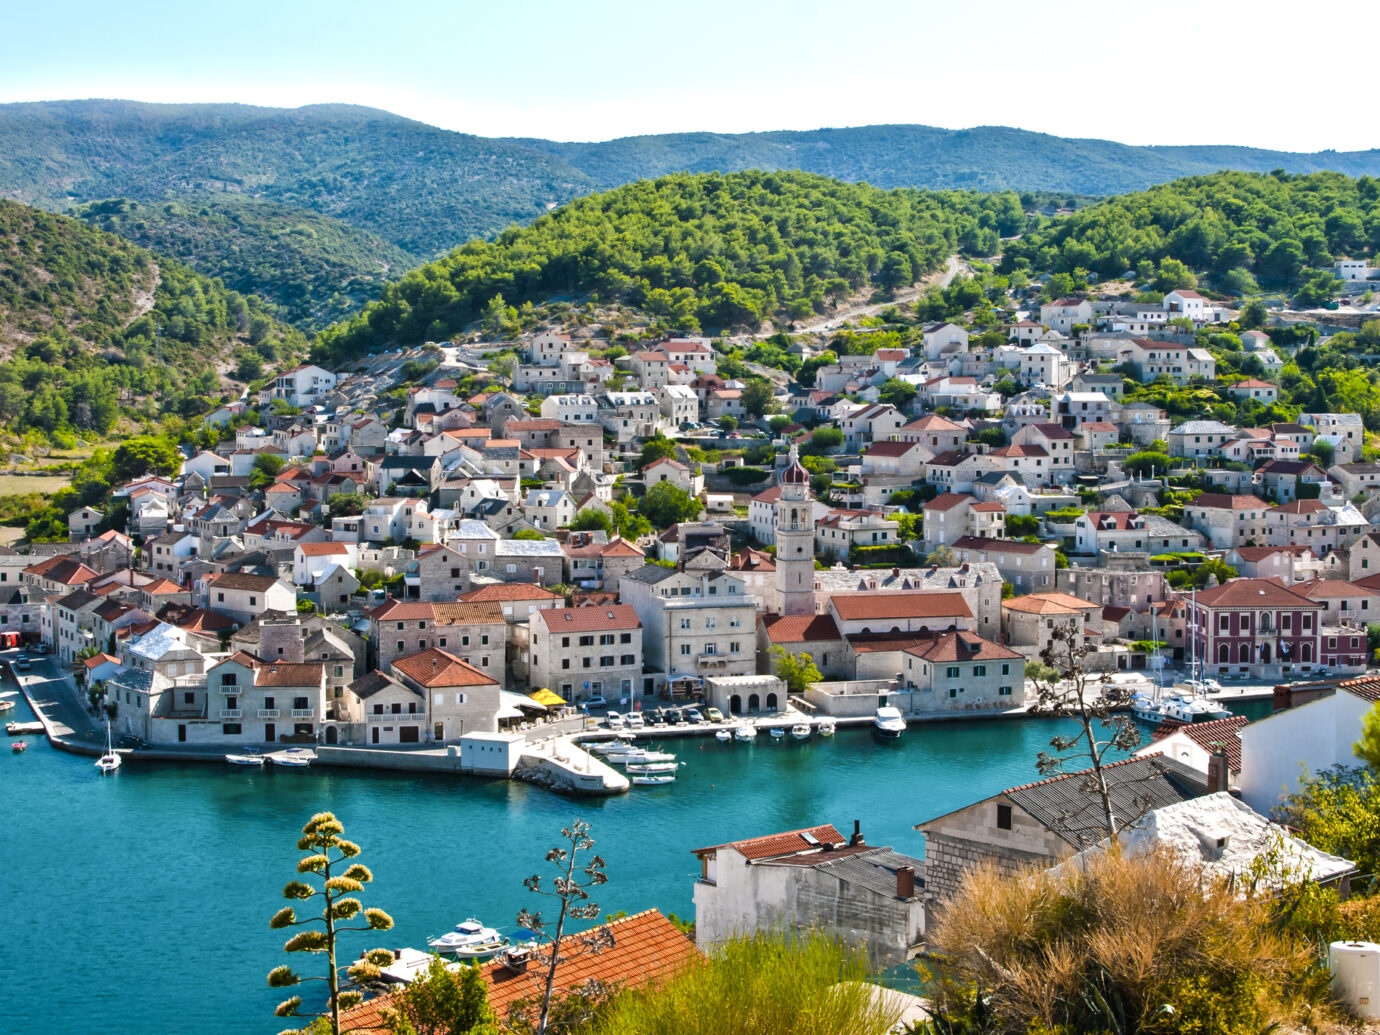 Pucisca, Croatia, Dalmatia - small romantic Croatian town located on the island of Brac, at the bay. Summer landscape with town and bay. Travel destination.